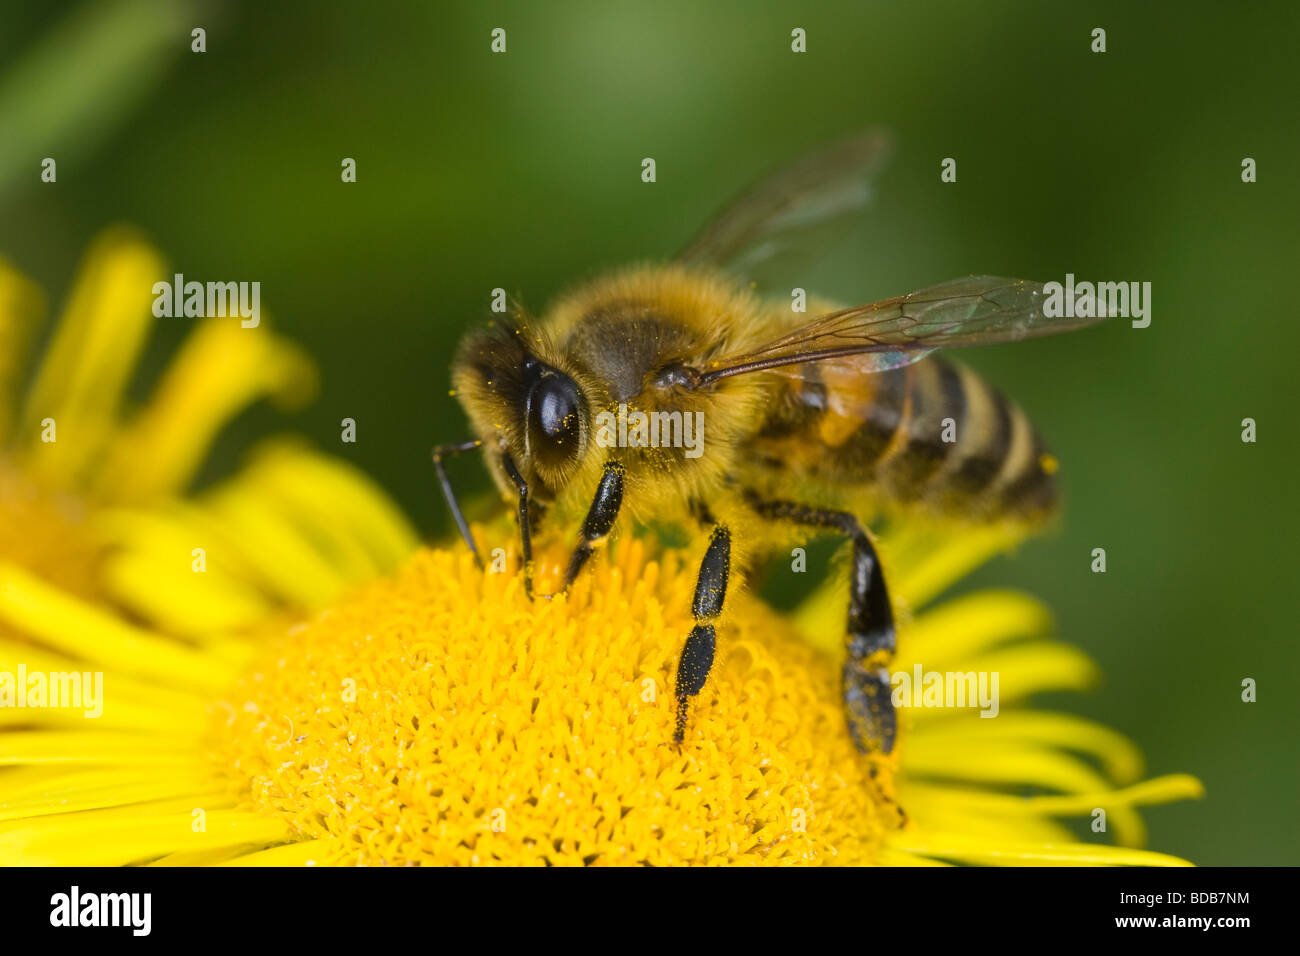 Honeybee (Apis mellifera) collecting nectar from a Ragwort flower - Stock Image